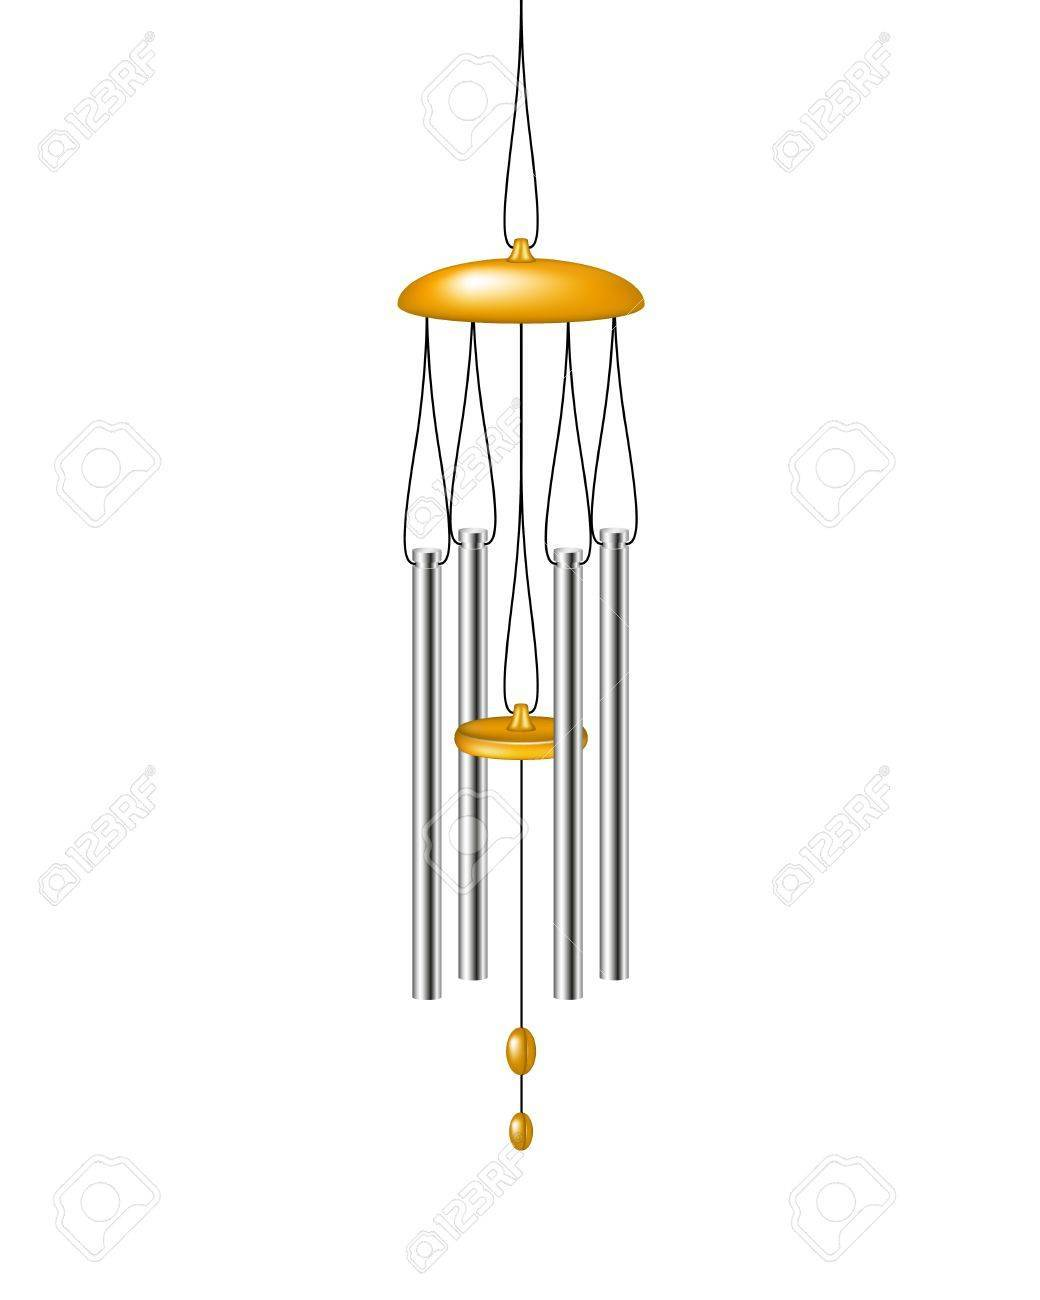 Wind chime clipart 5 » Clipart Portal.